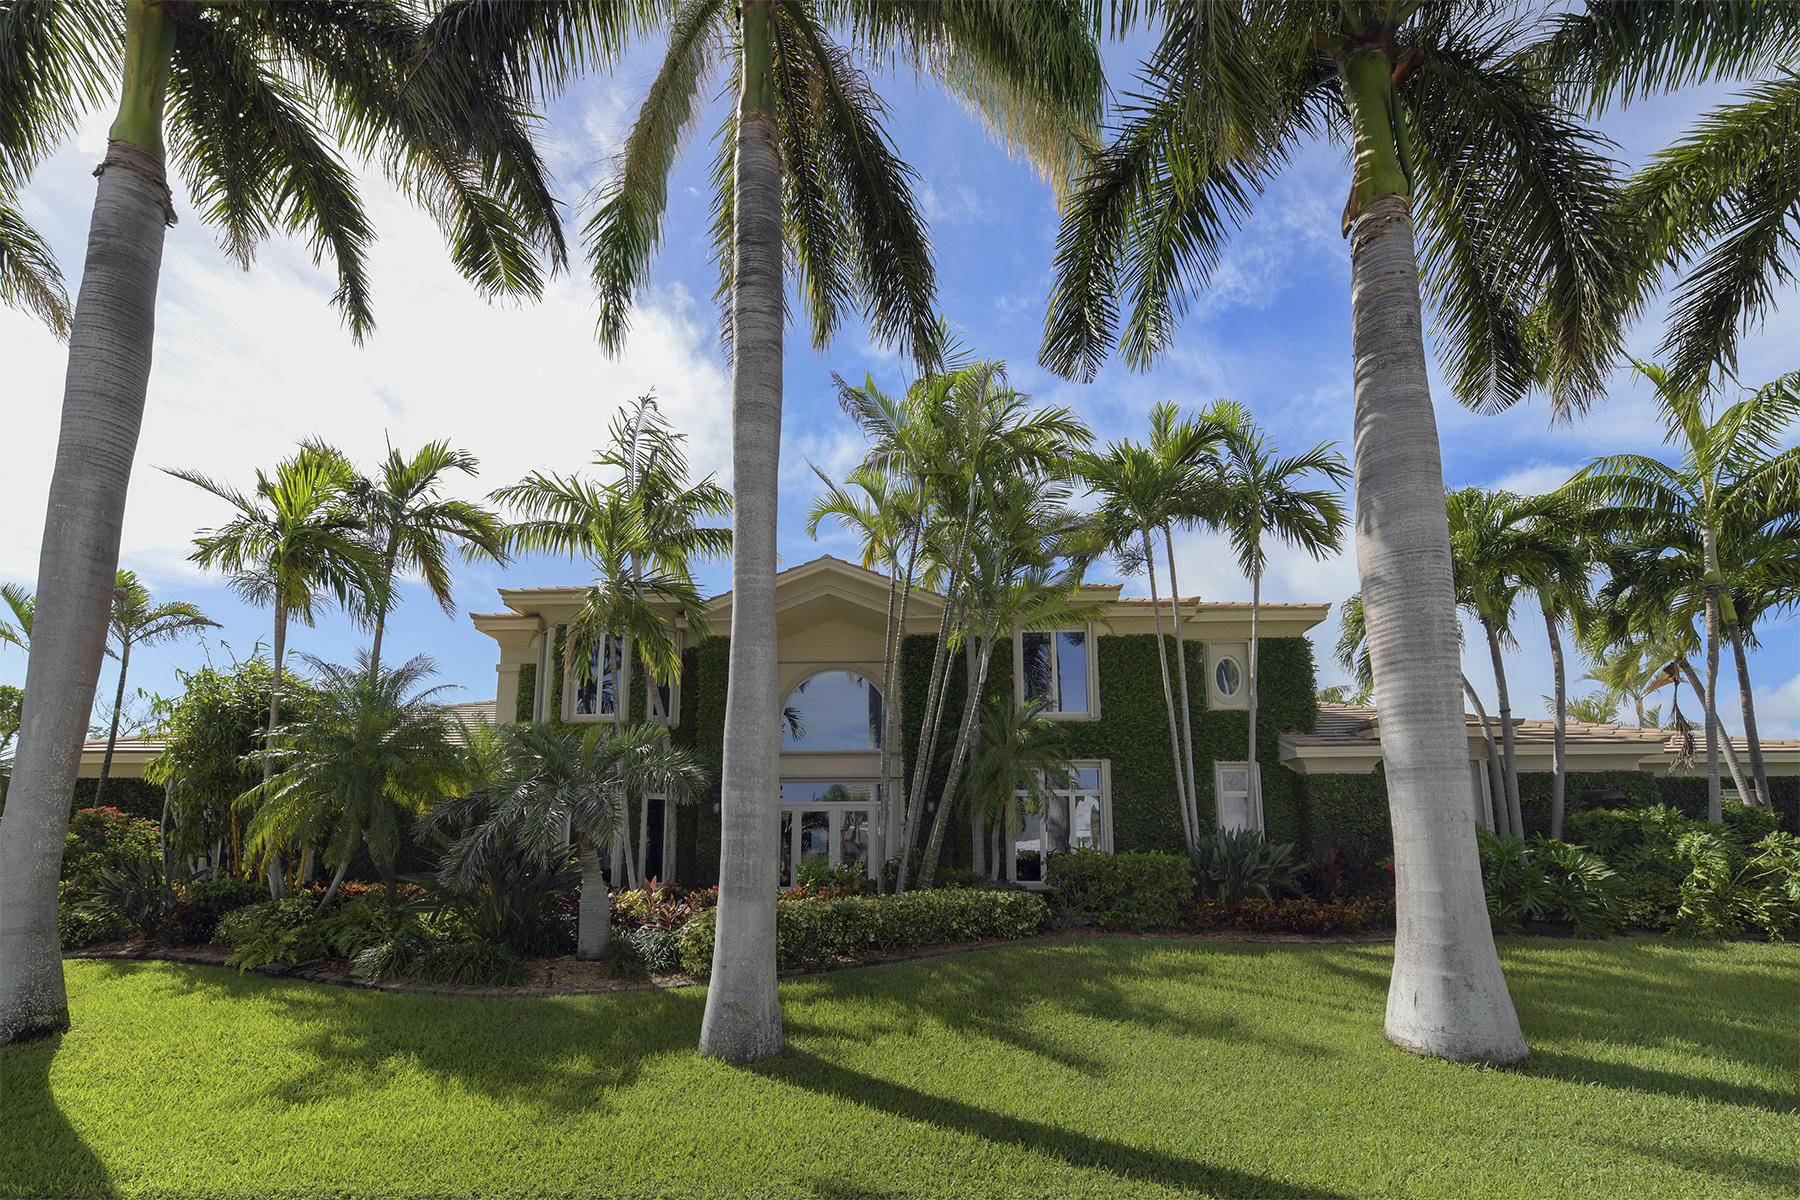 Single Family Homes for Active at 285 14 Th Street, Key Colony, FL 285 14 Th Street Key Colony, Florida 33051 United States